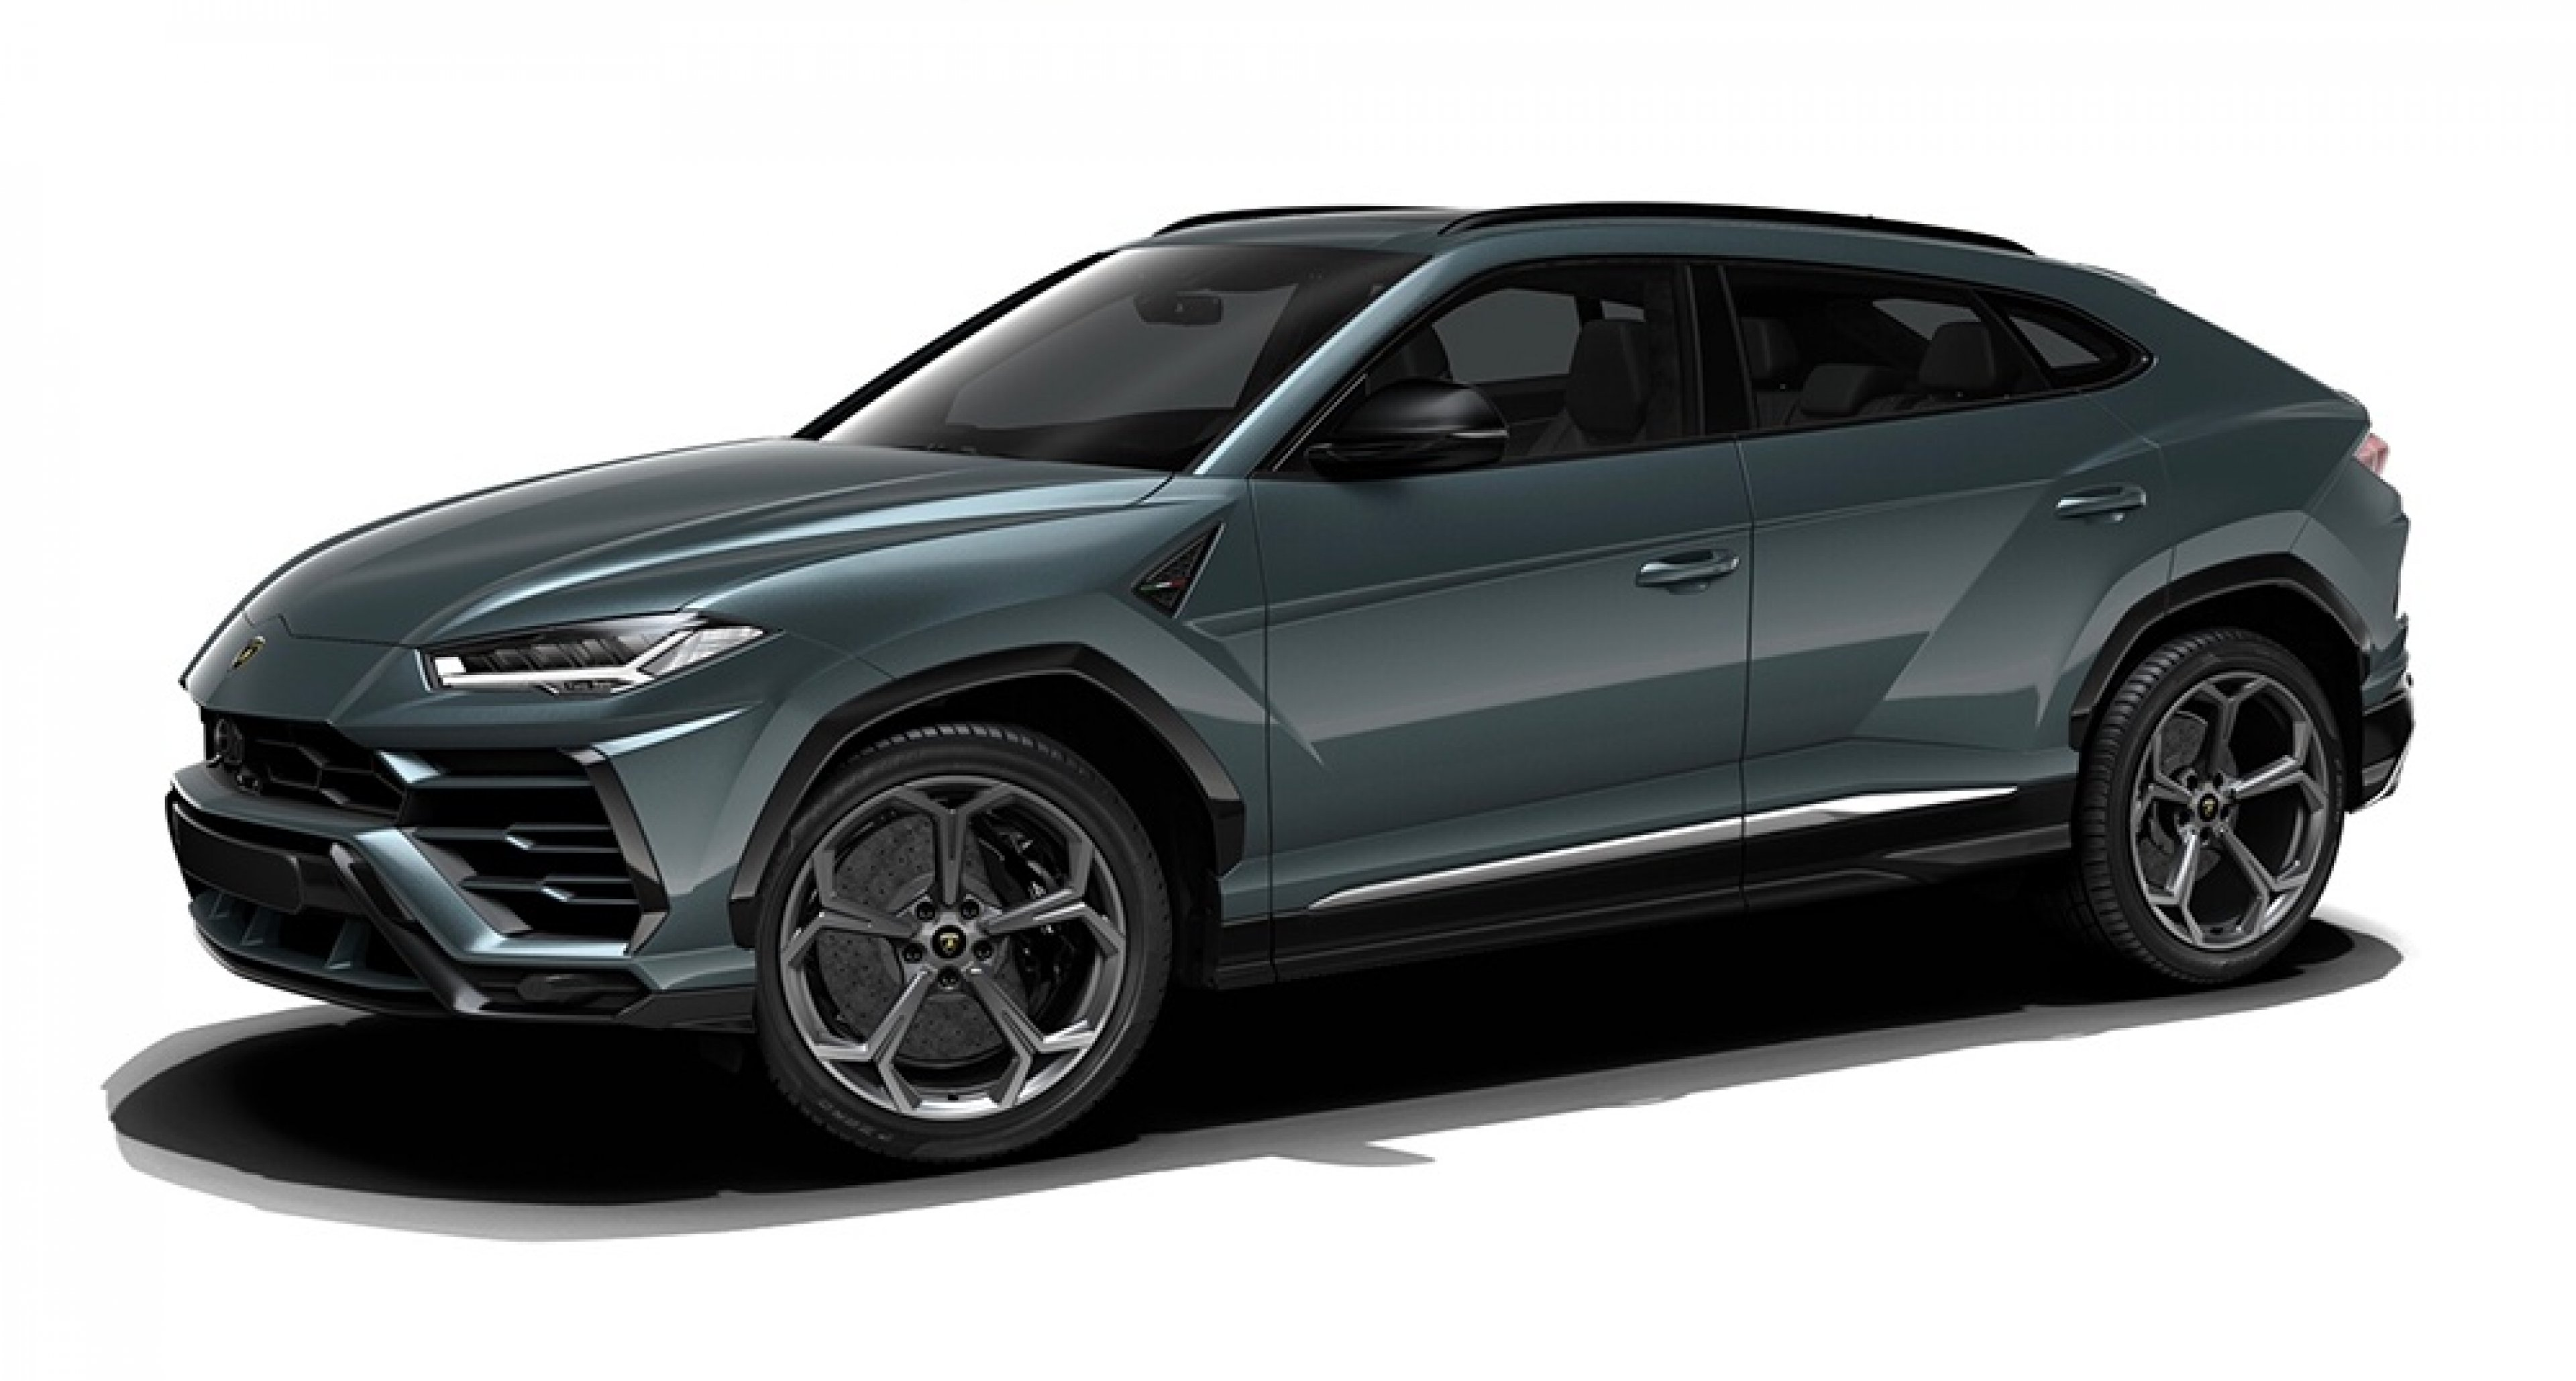 Let\u0027s get personal with the Lamborghini Urus